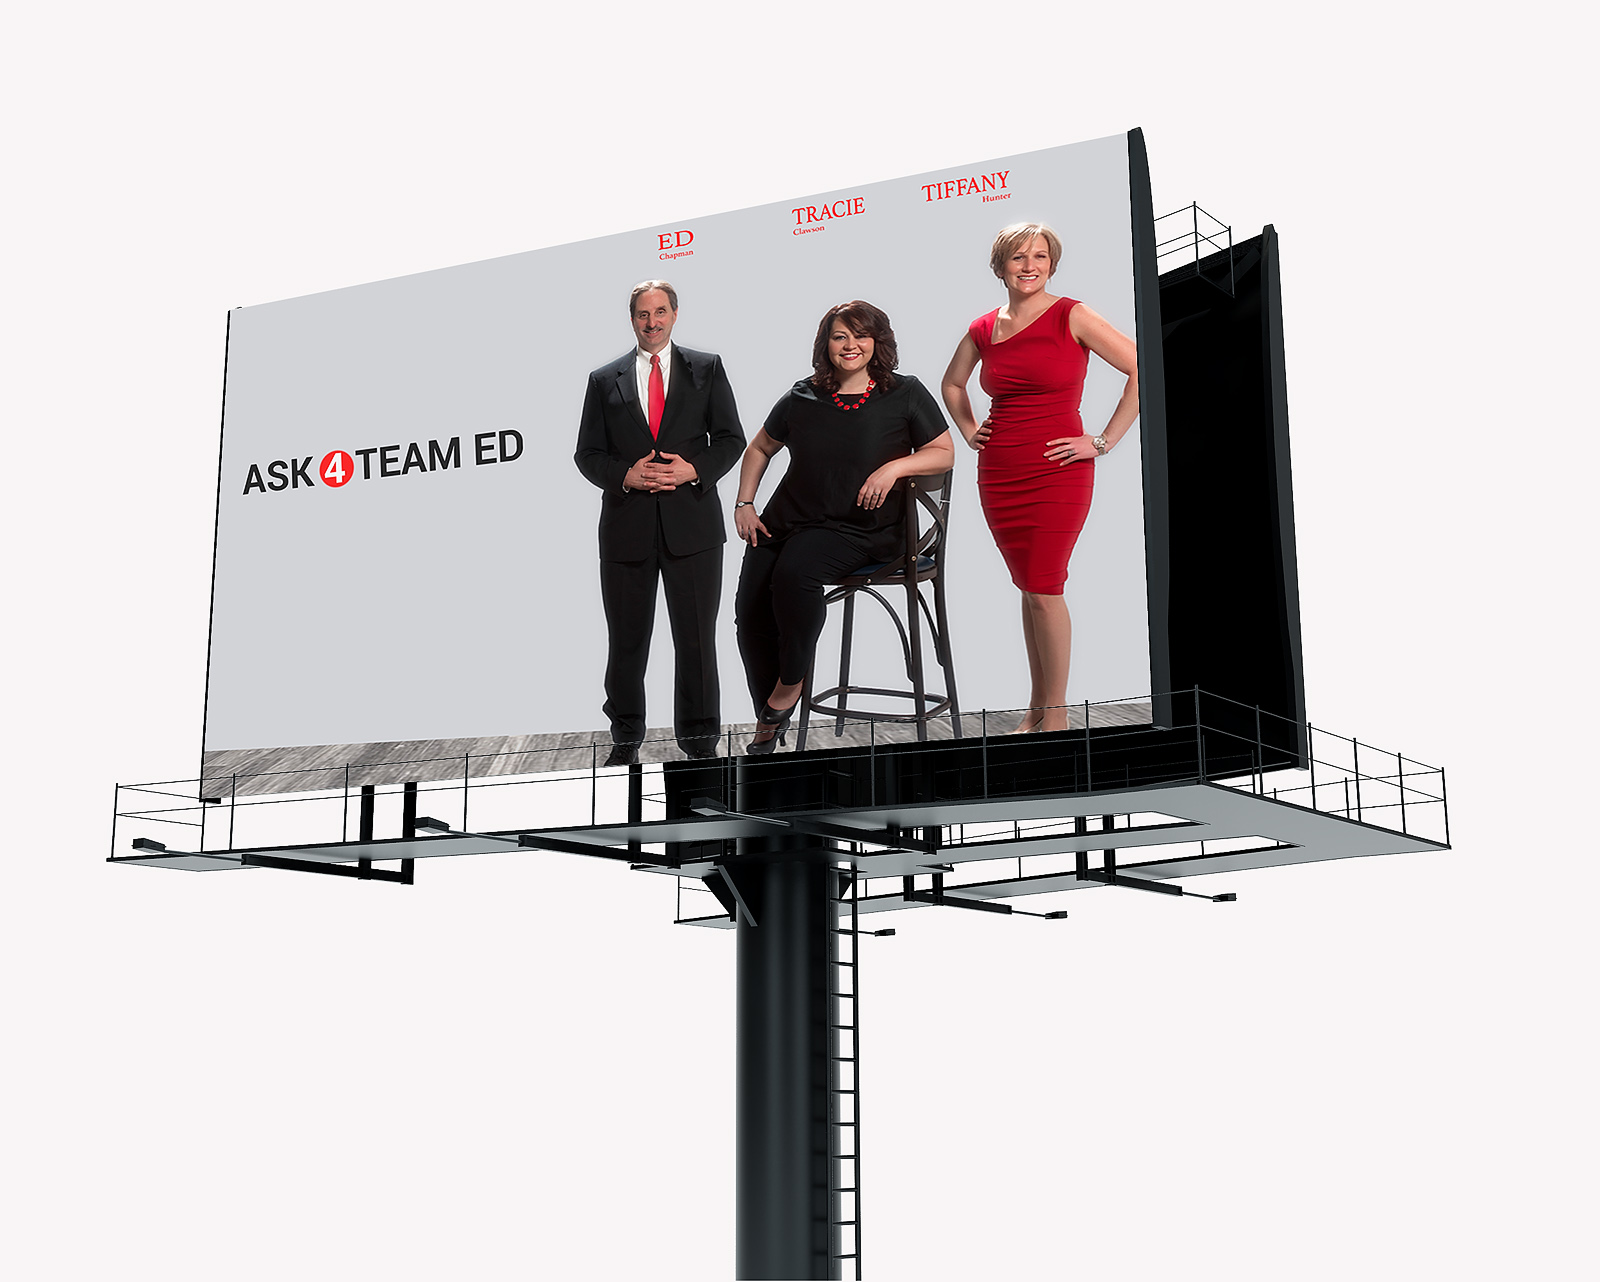 billboard photo for realtors